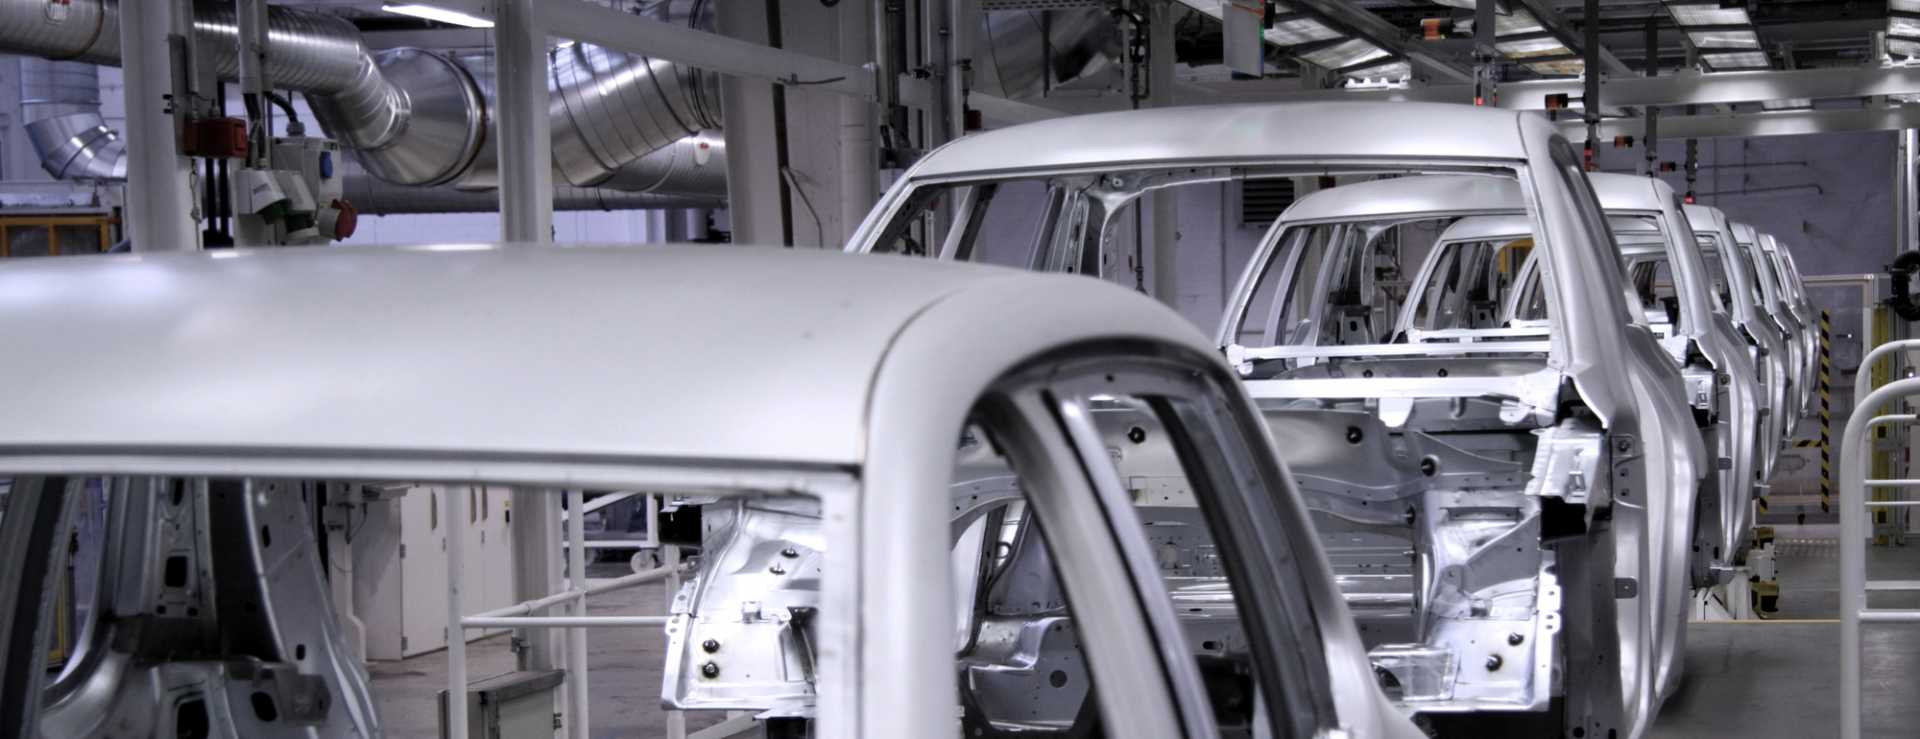 UK Manufacturers Automotive Conveyer in factory Production Line - image courtesy of Depositphotos.